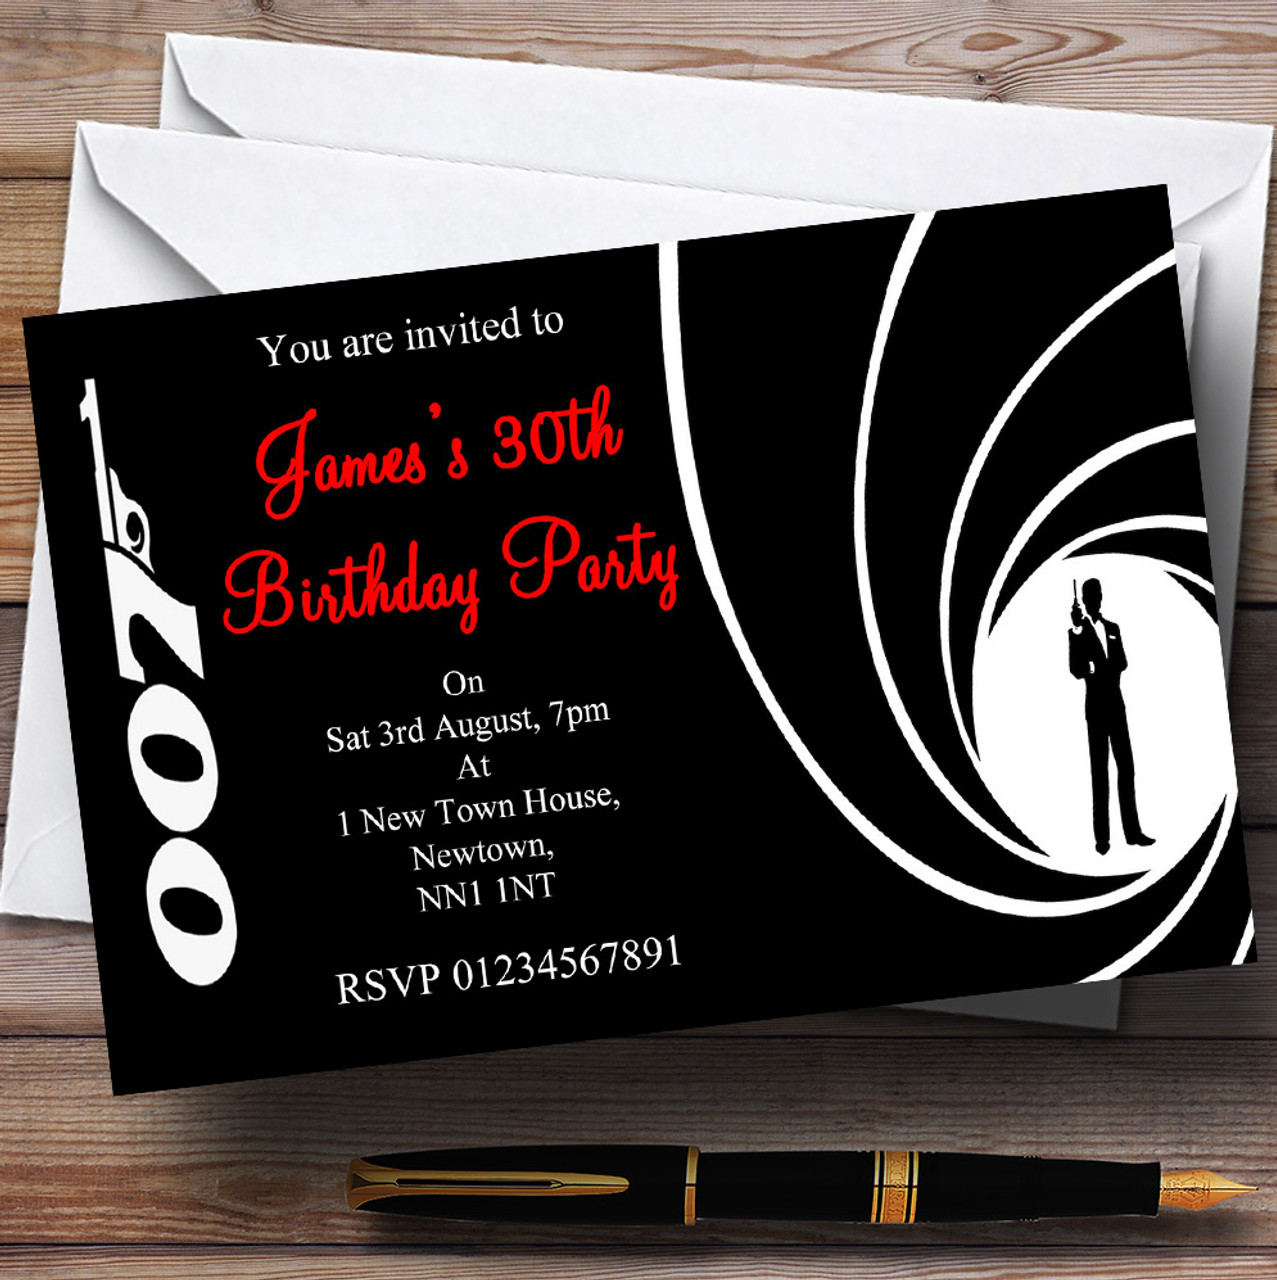 James Bond Personalised Party Invitations The Card Zoo